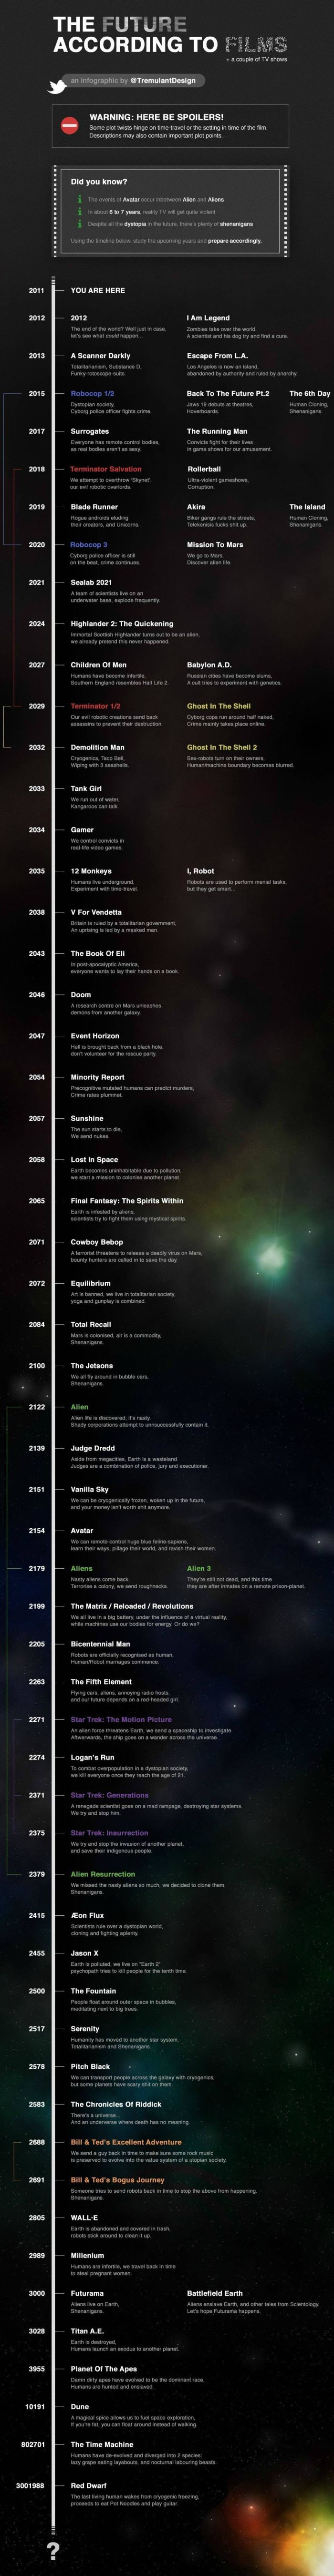 Our Future According to Films (infographic)